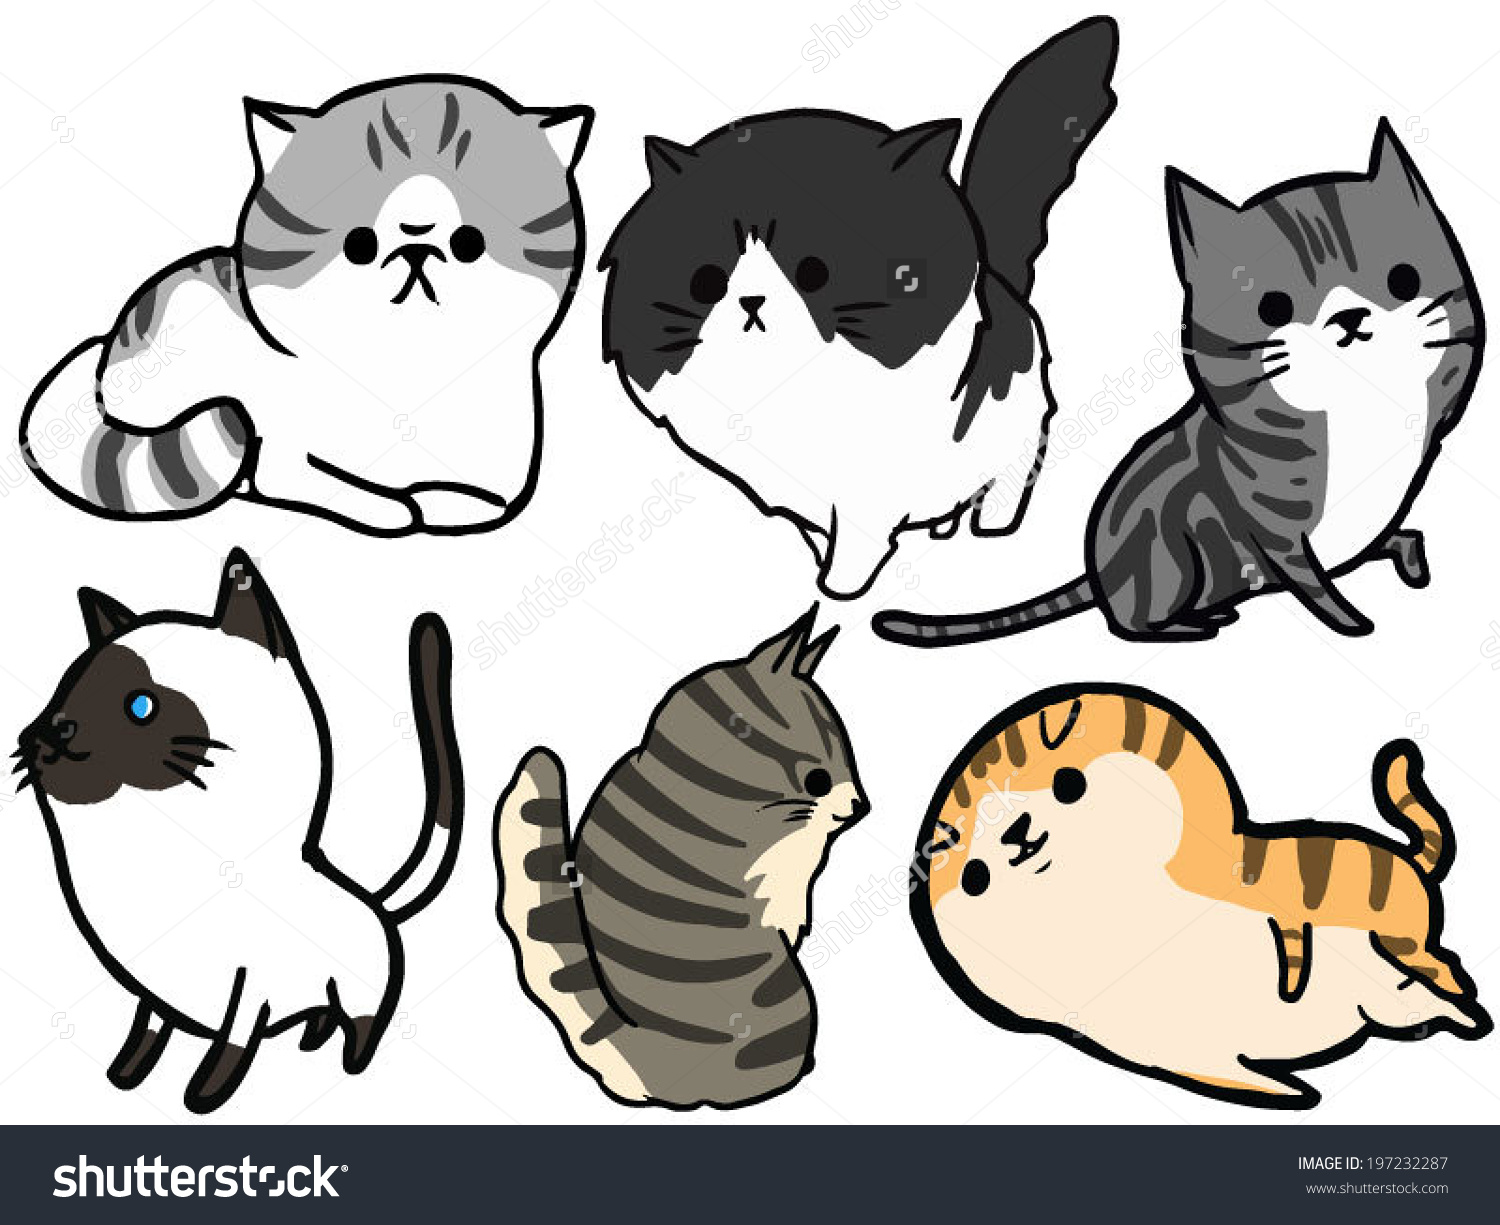 Scottish Fold clipart #13, Download drawings